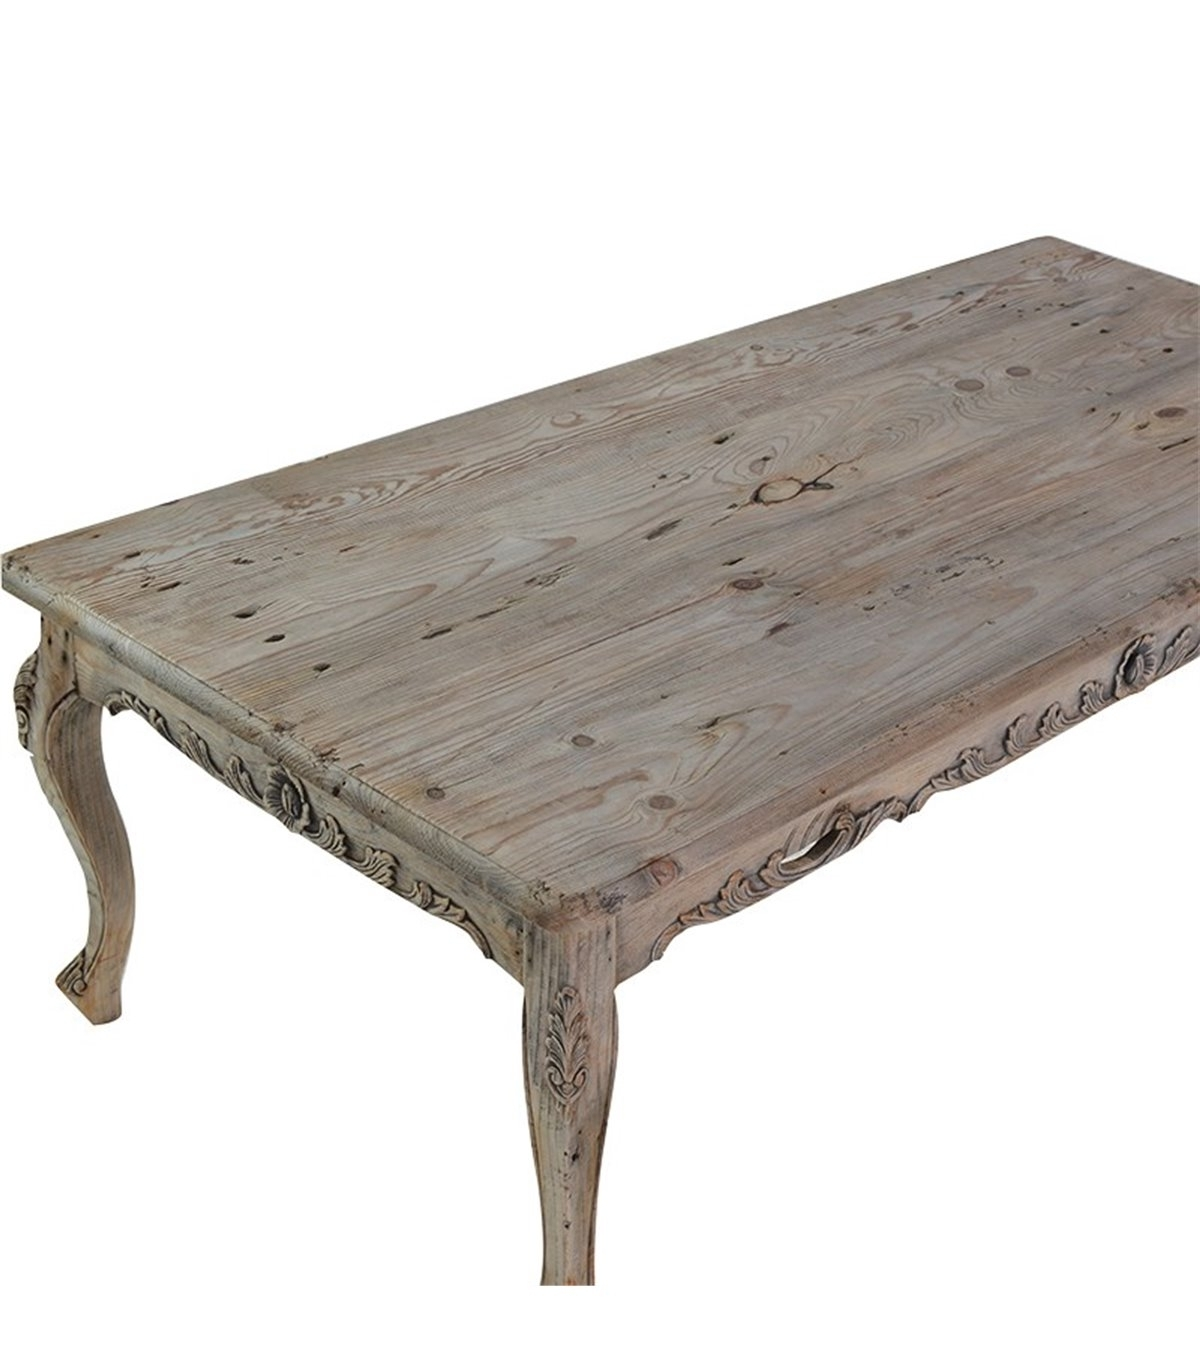 Widely Used Reclaimed Pine Coffee Tables Inside Reclaimed Pine Coffee Table (View 19 of 20)